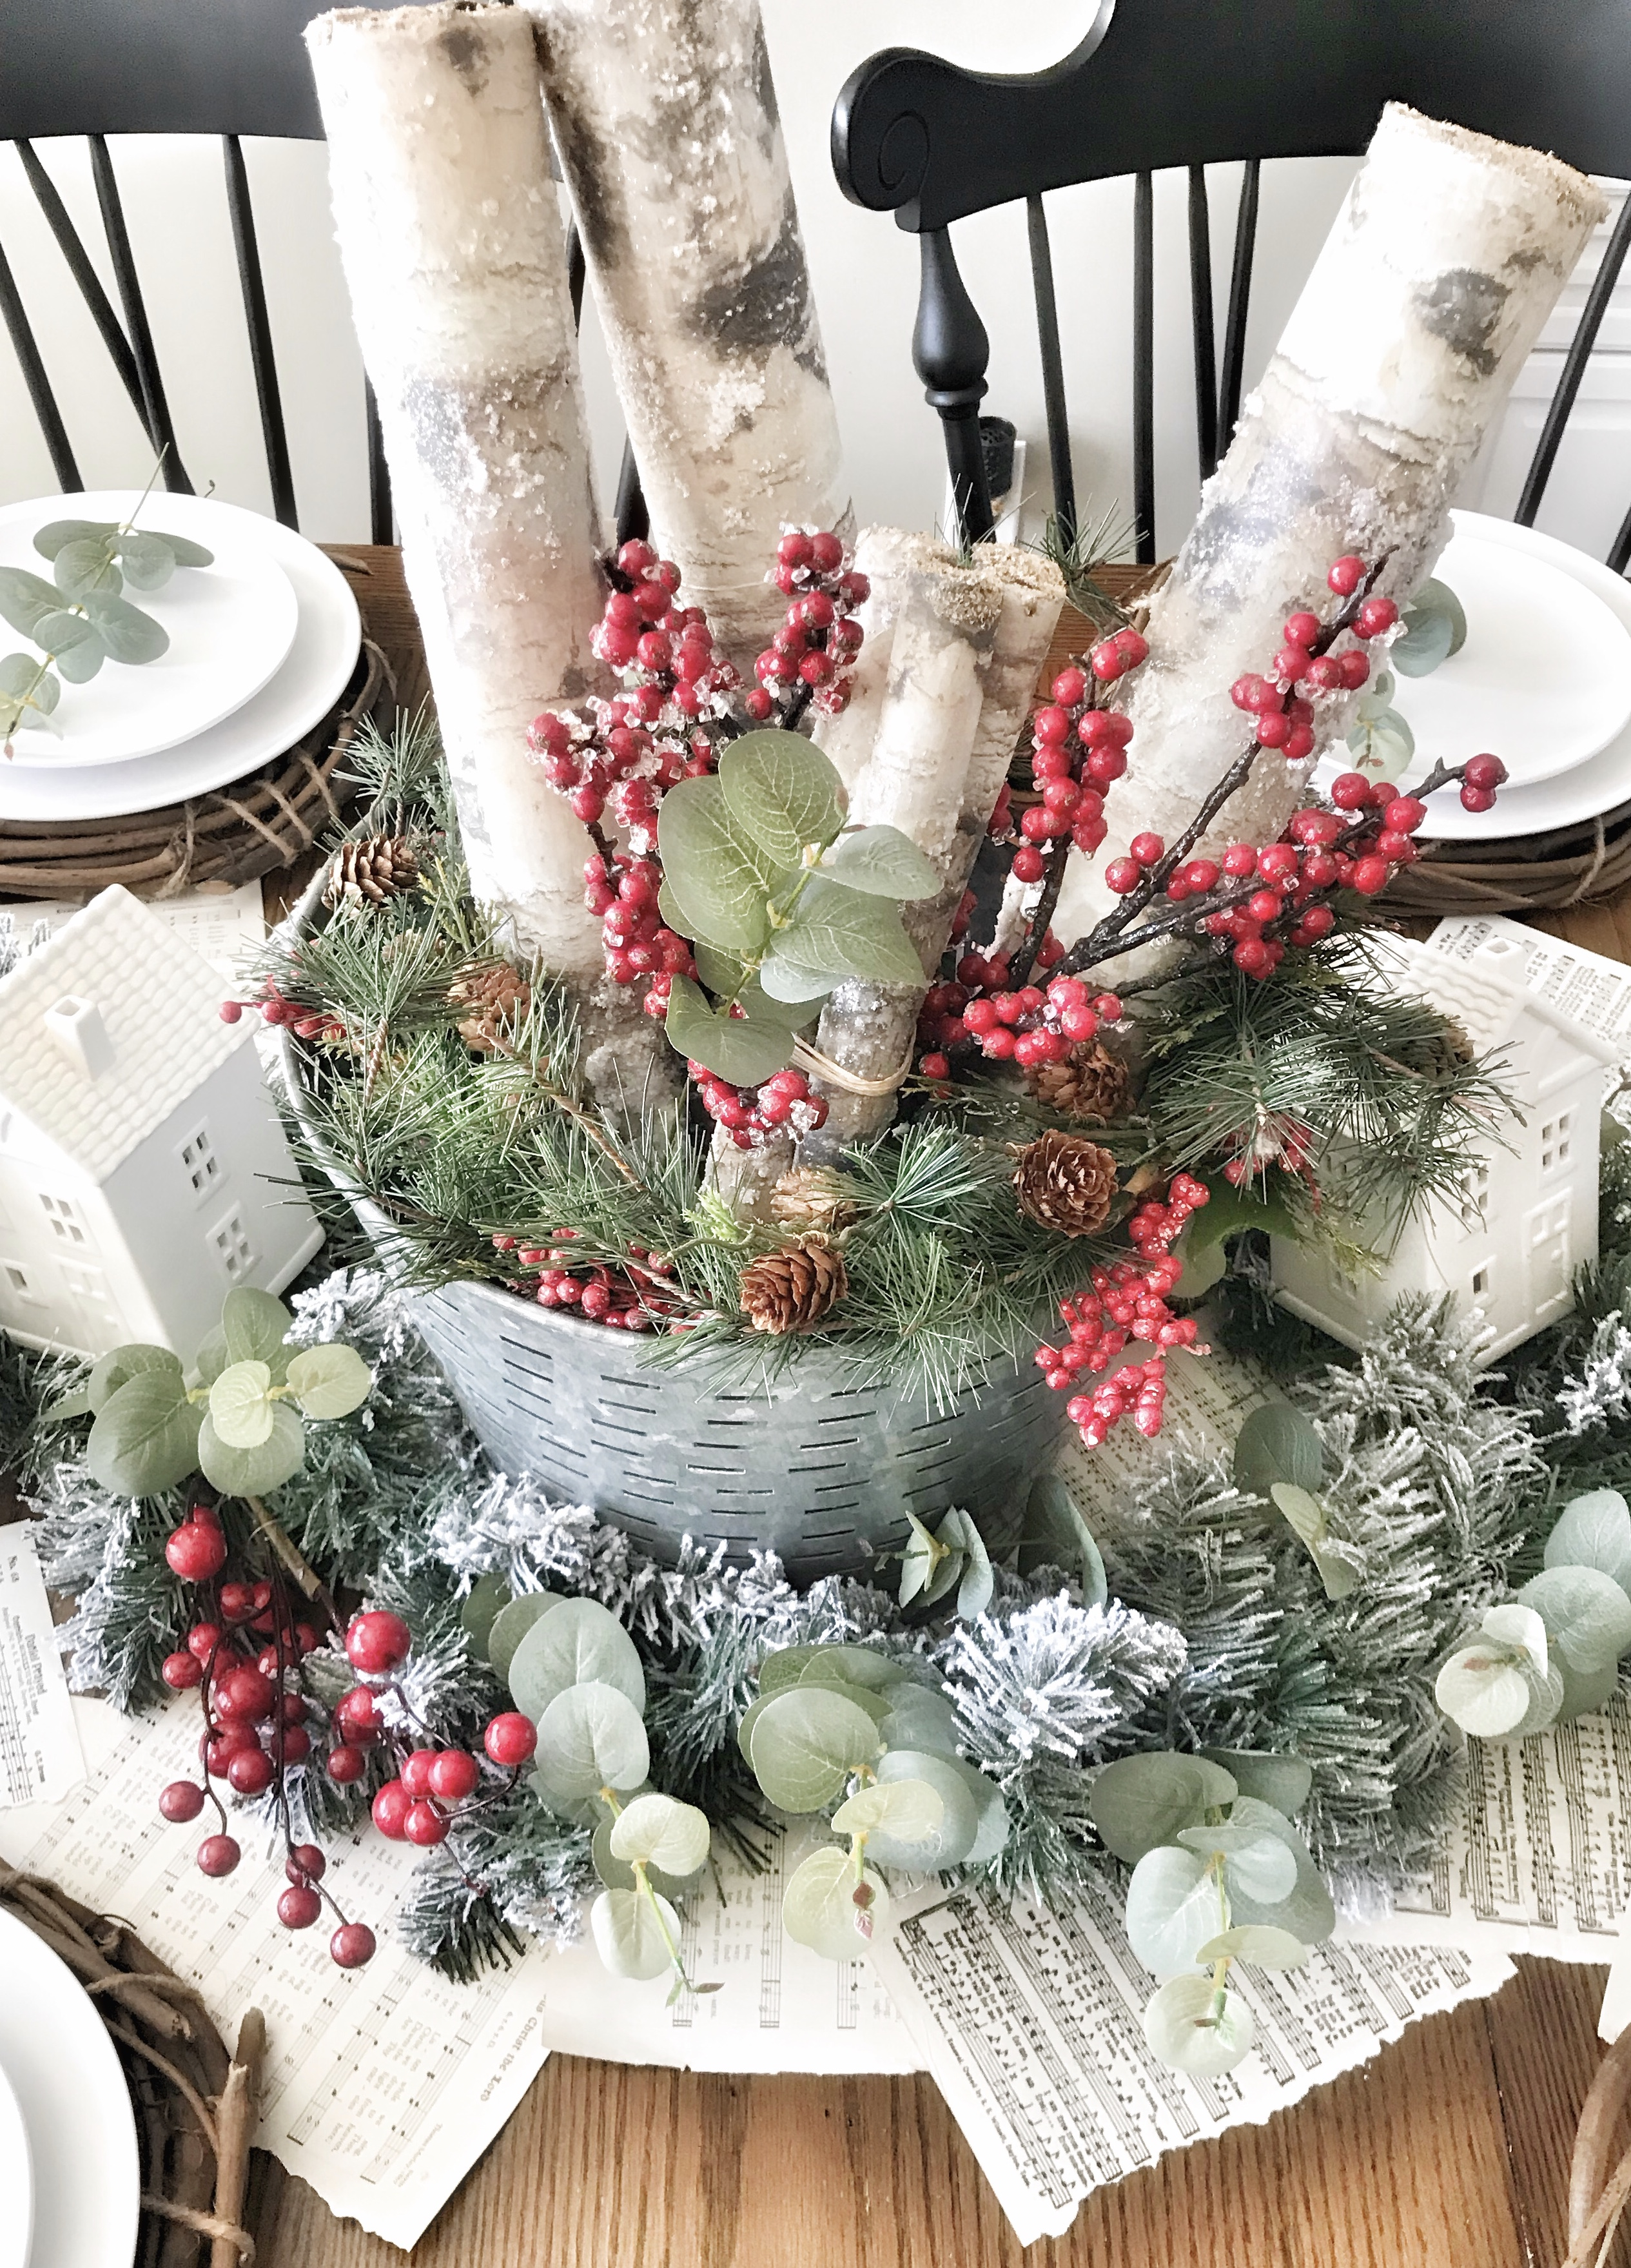 Christmas table centerpiece with wood and greenery